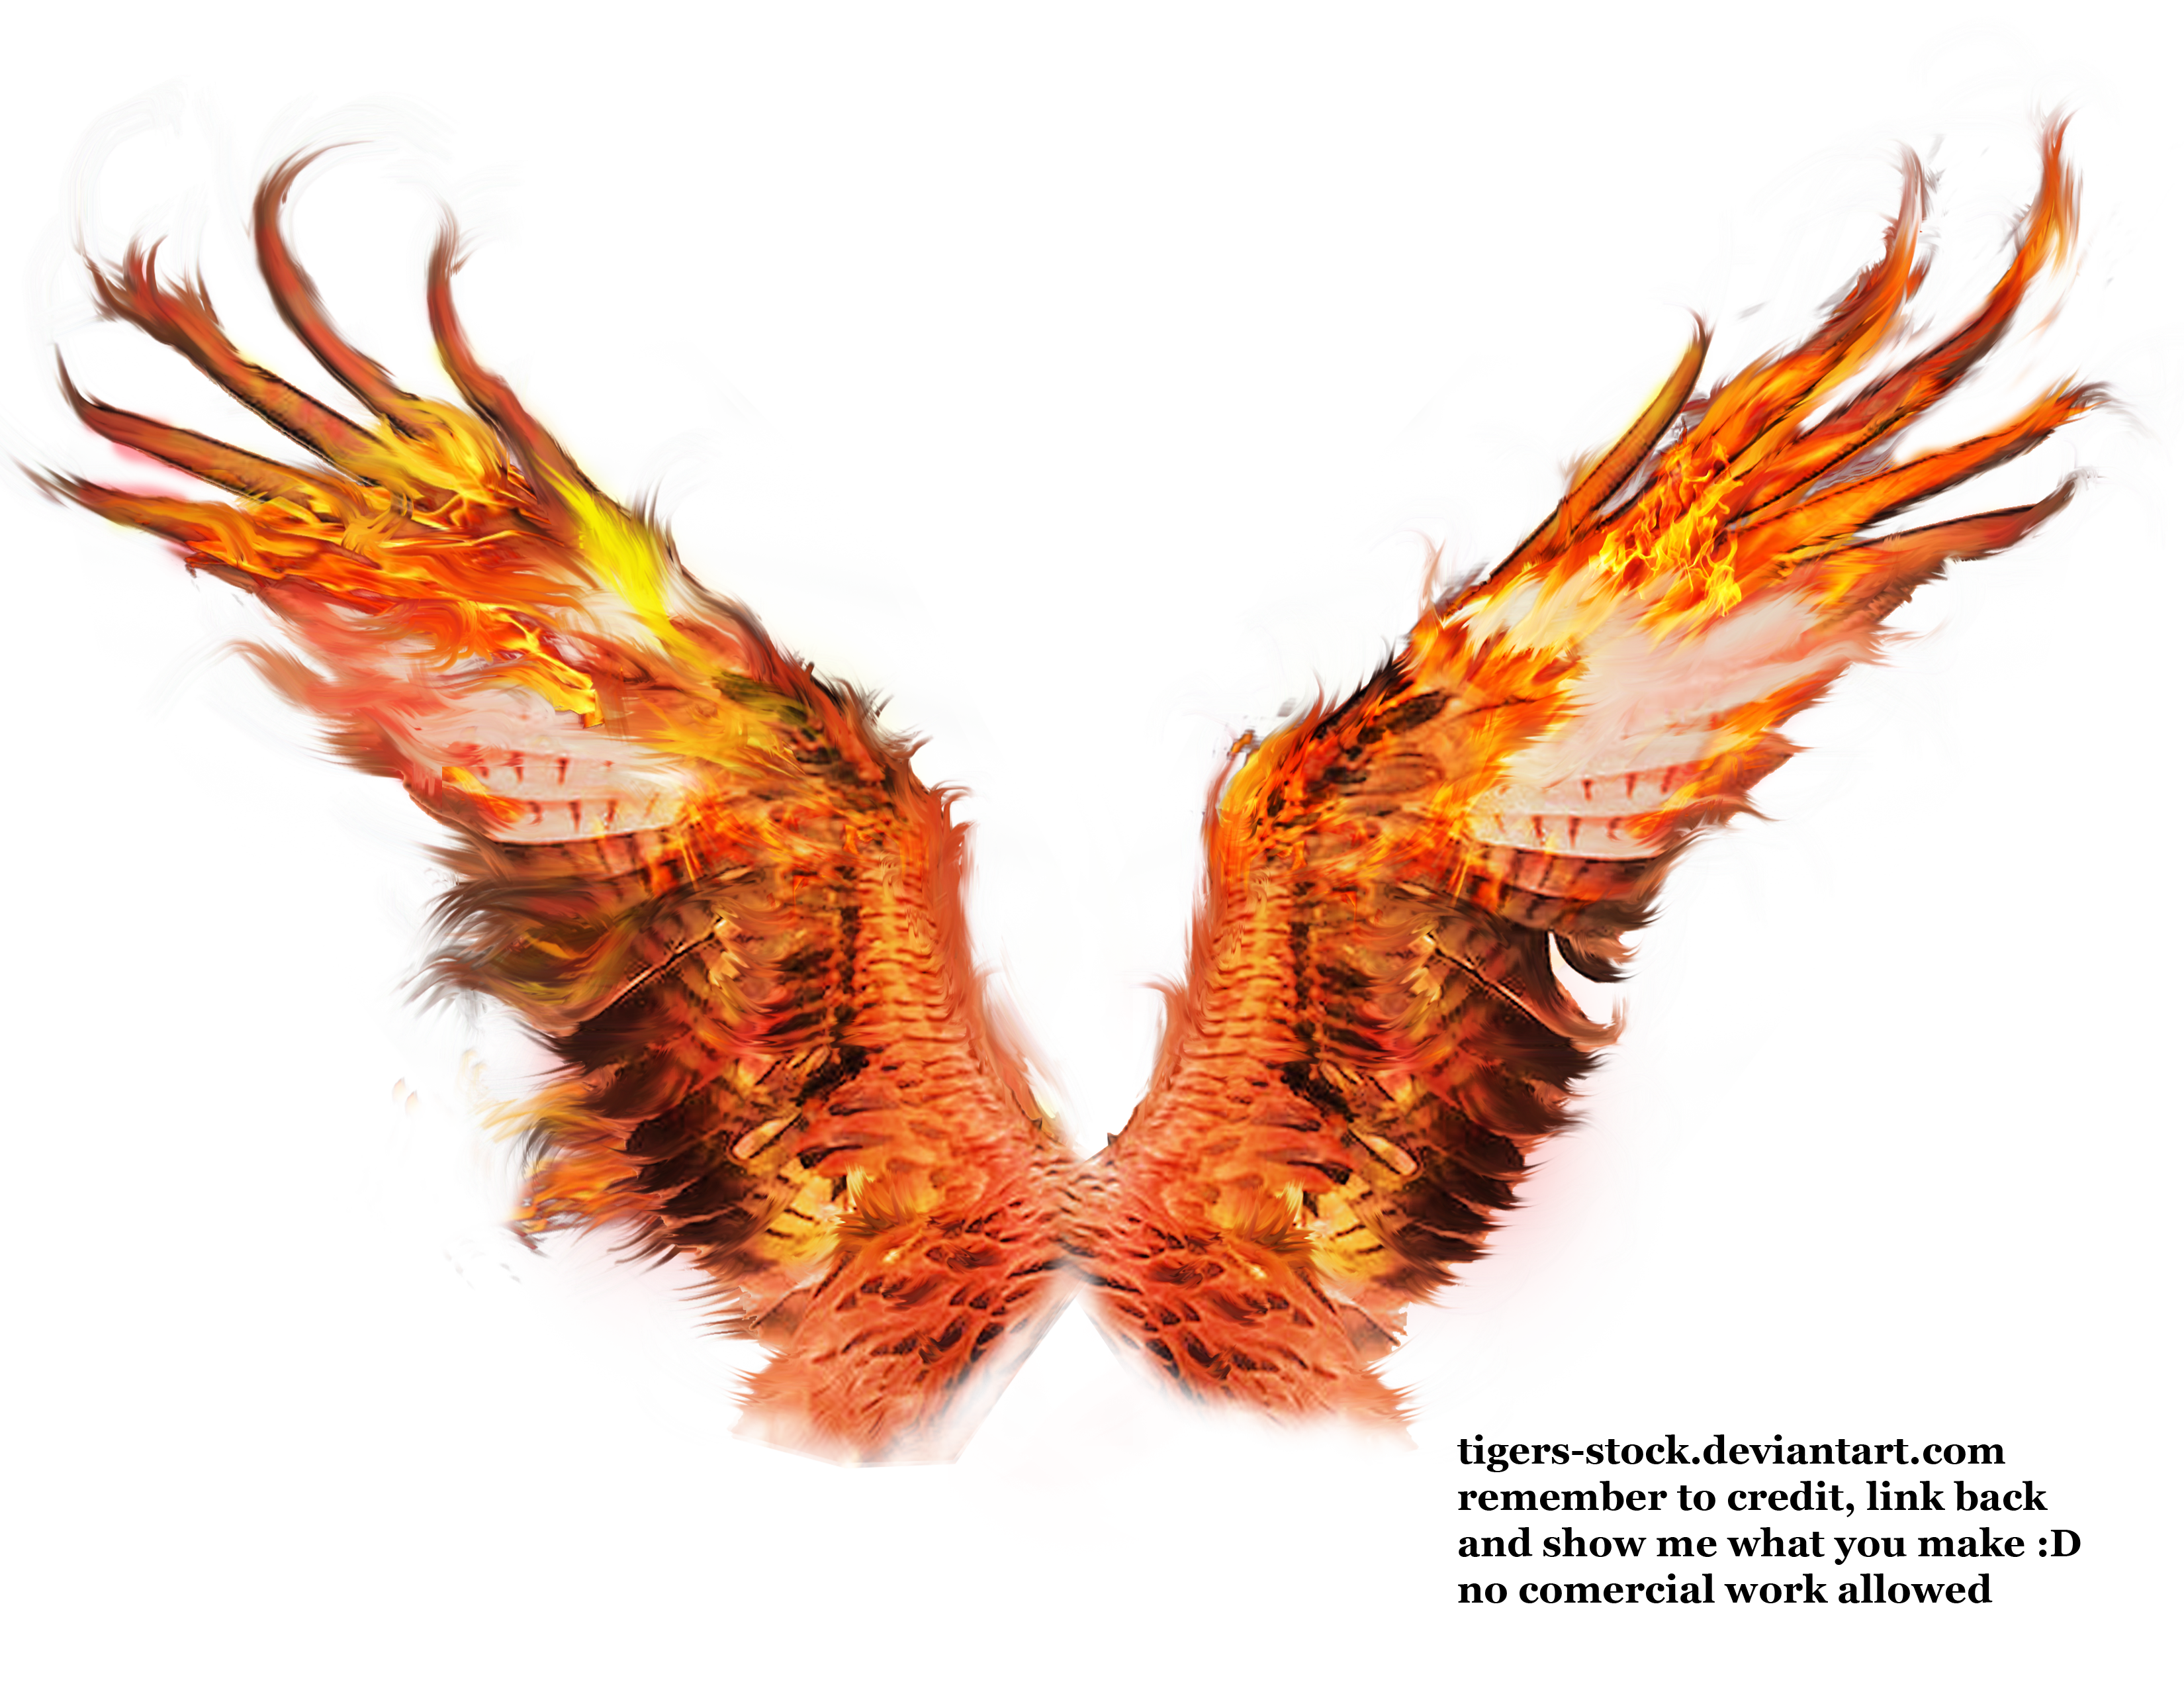 Fire wings png. Deviantart burning letter a